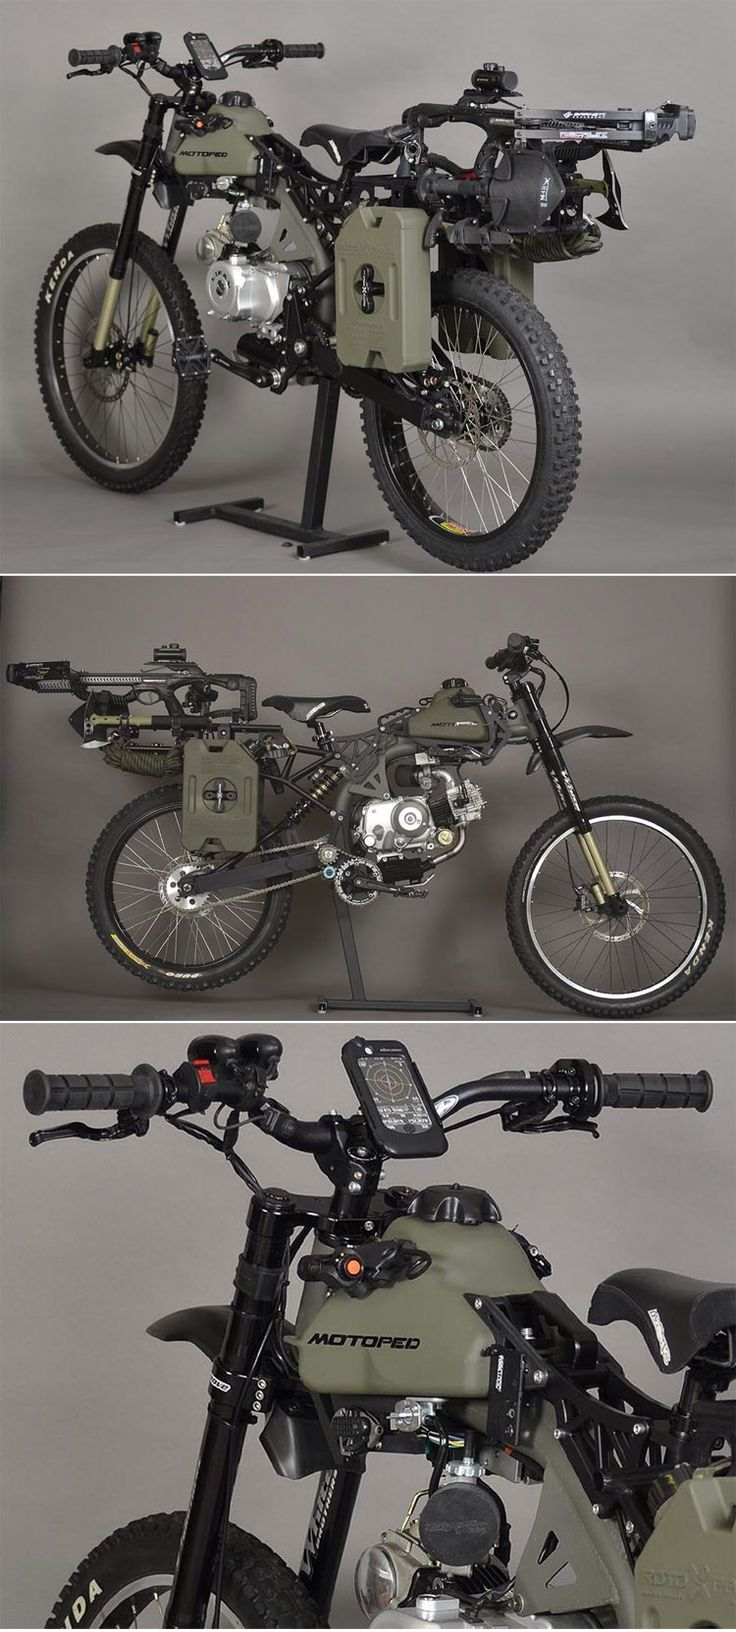 Motopeds Survival Bike : Black Opps Edition Not a true scooter perhaps but close and pretty cool